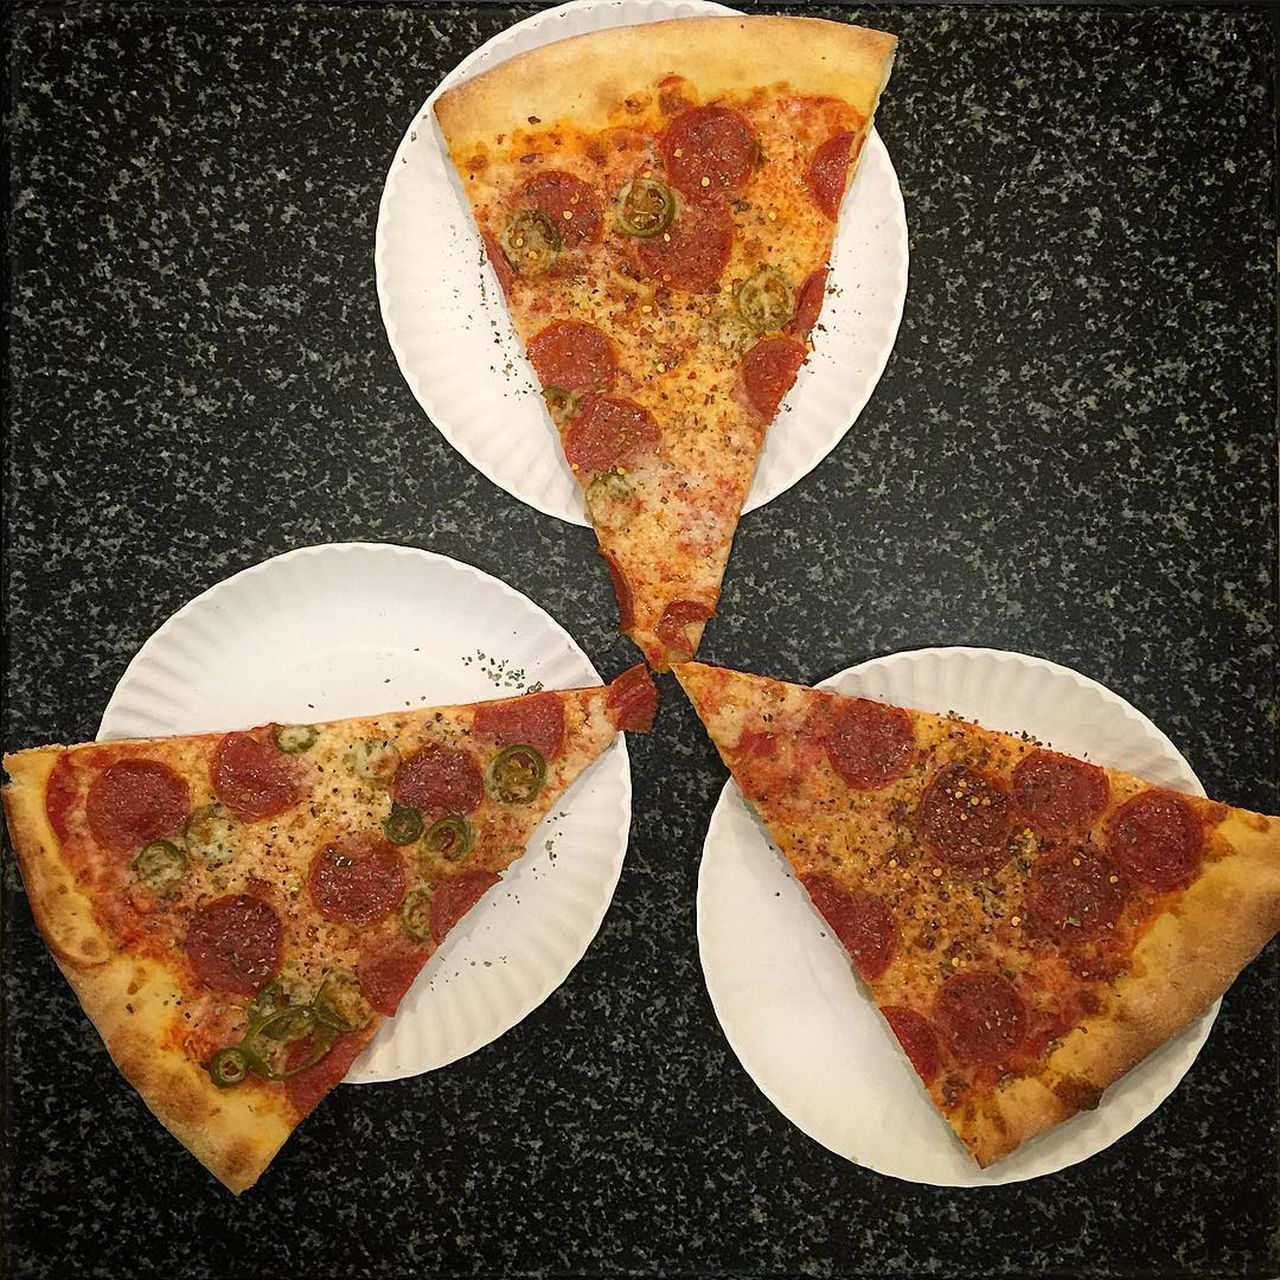 Breakfast Close-up Constructivism Day Food Freshness Indulgence Meal No People NYC Junk Food Ironman Pizza Pizzalove Ready-to-eat Served Serving Size SLICE SLICE Snack Still Life Temptation Triangular Theory Of Love